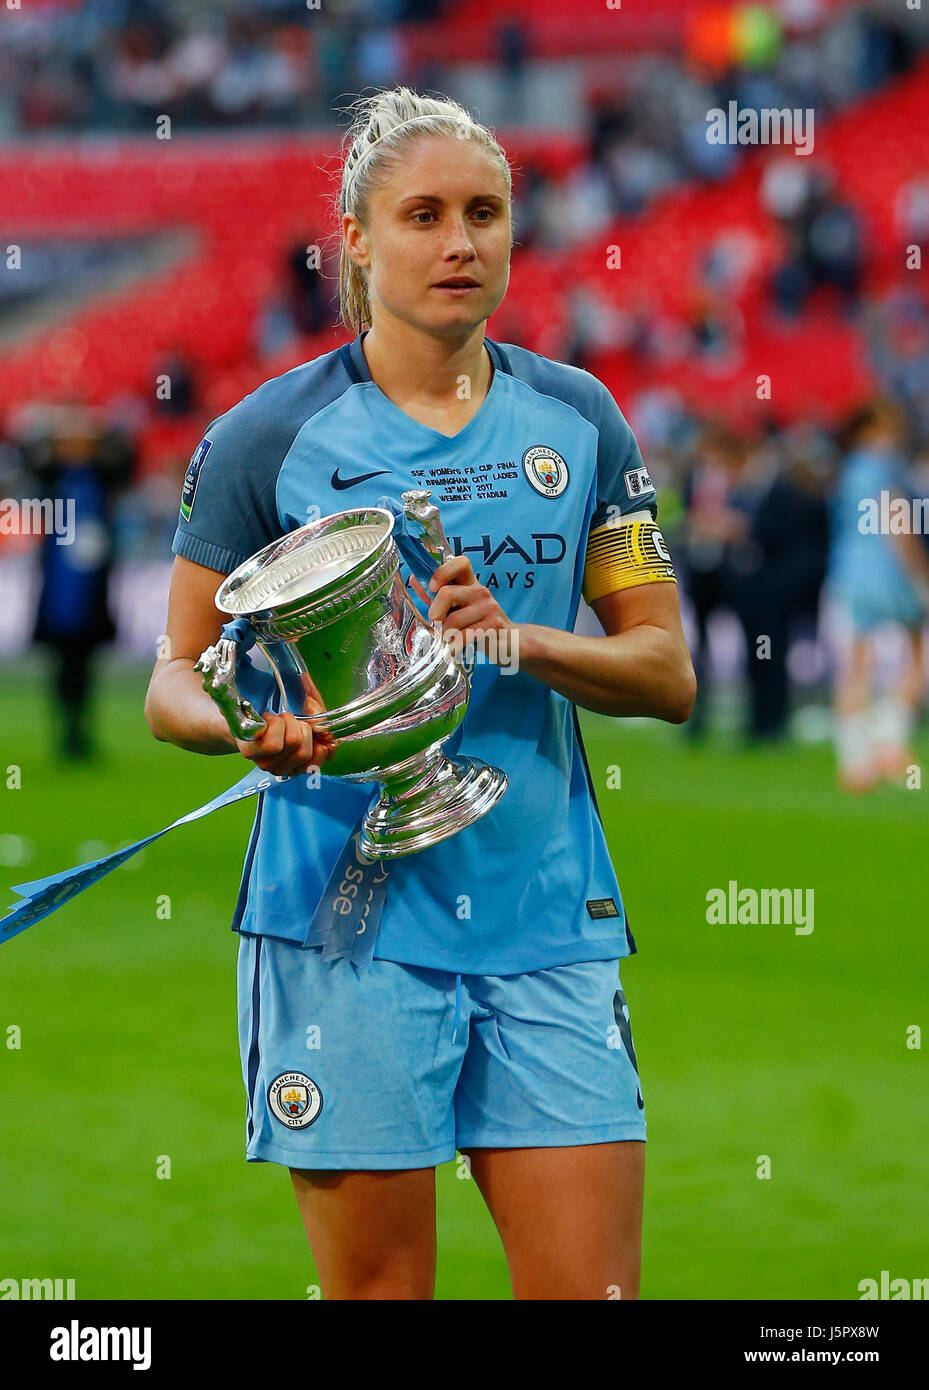 Manchester City captain Steph Houghton  kisses the cup during the SSE Women's FA Cup Final match between Birmingham - Stock Image